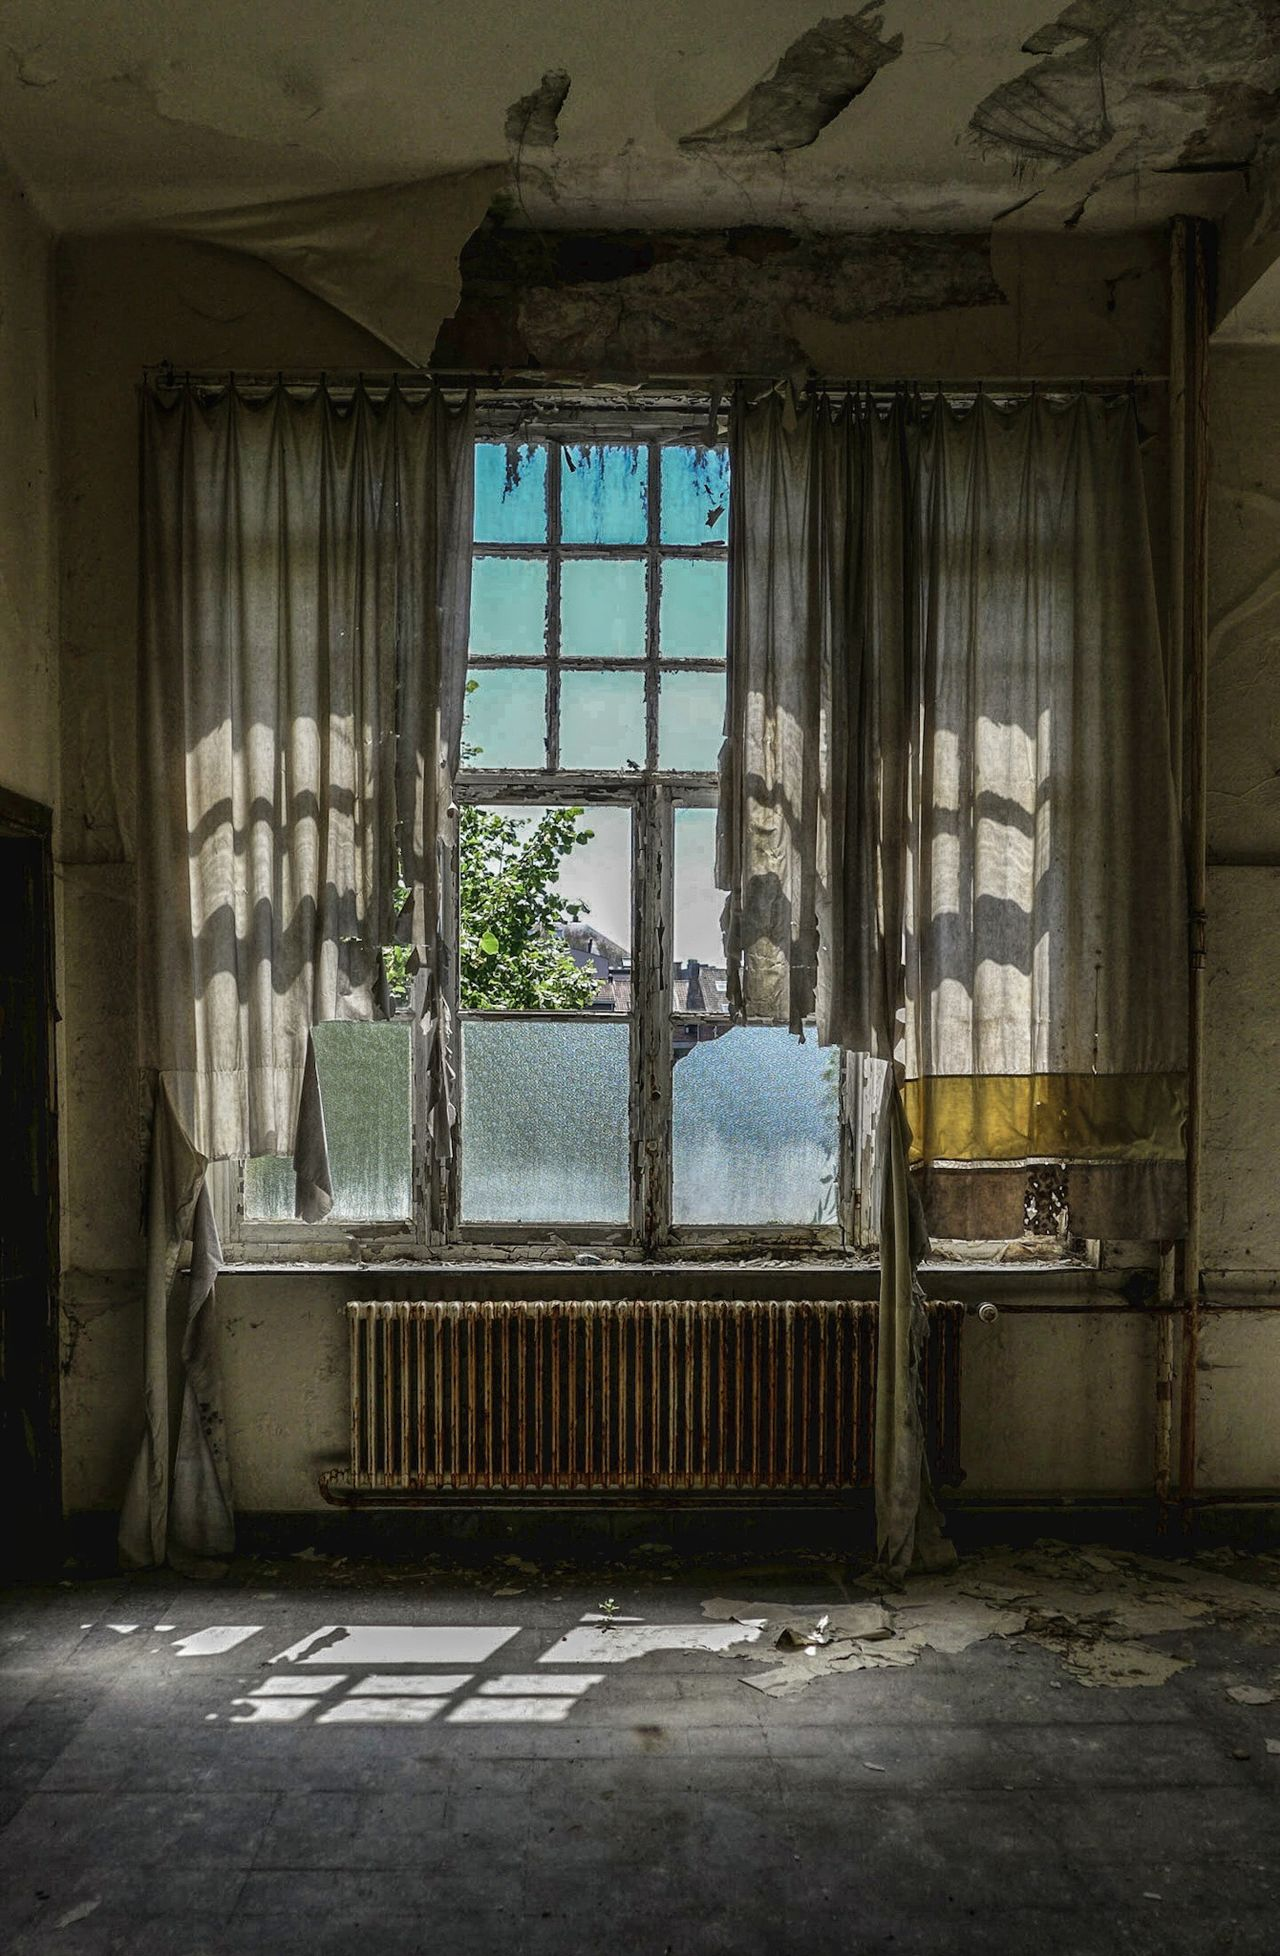 Window Indoors  Abandoned Architecture Damaged Day No People Radiator Built Structure History Urbexexplorer Abandoned Places Photograph Photography Urbex Urbexworld Urbexphotography Lostplaces Abandonedplaces Discovering School Travel Destinations Abandoned Buildings Close-up Architecture